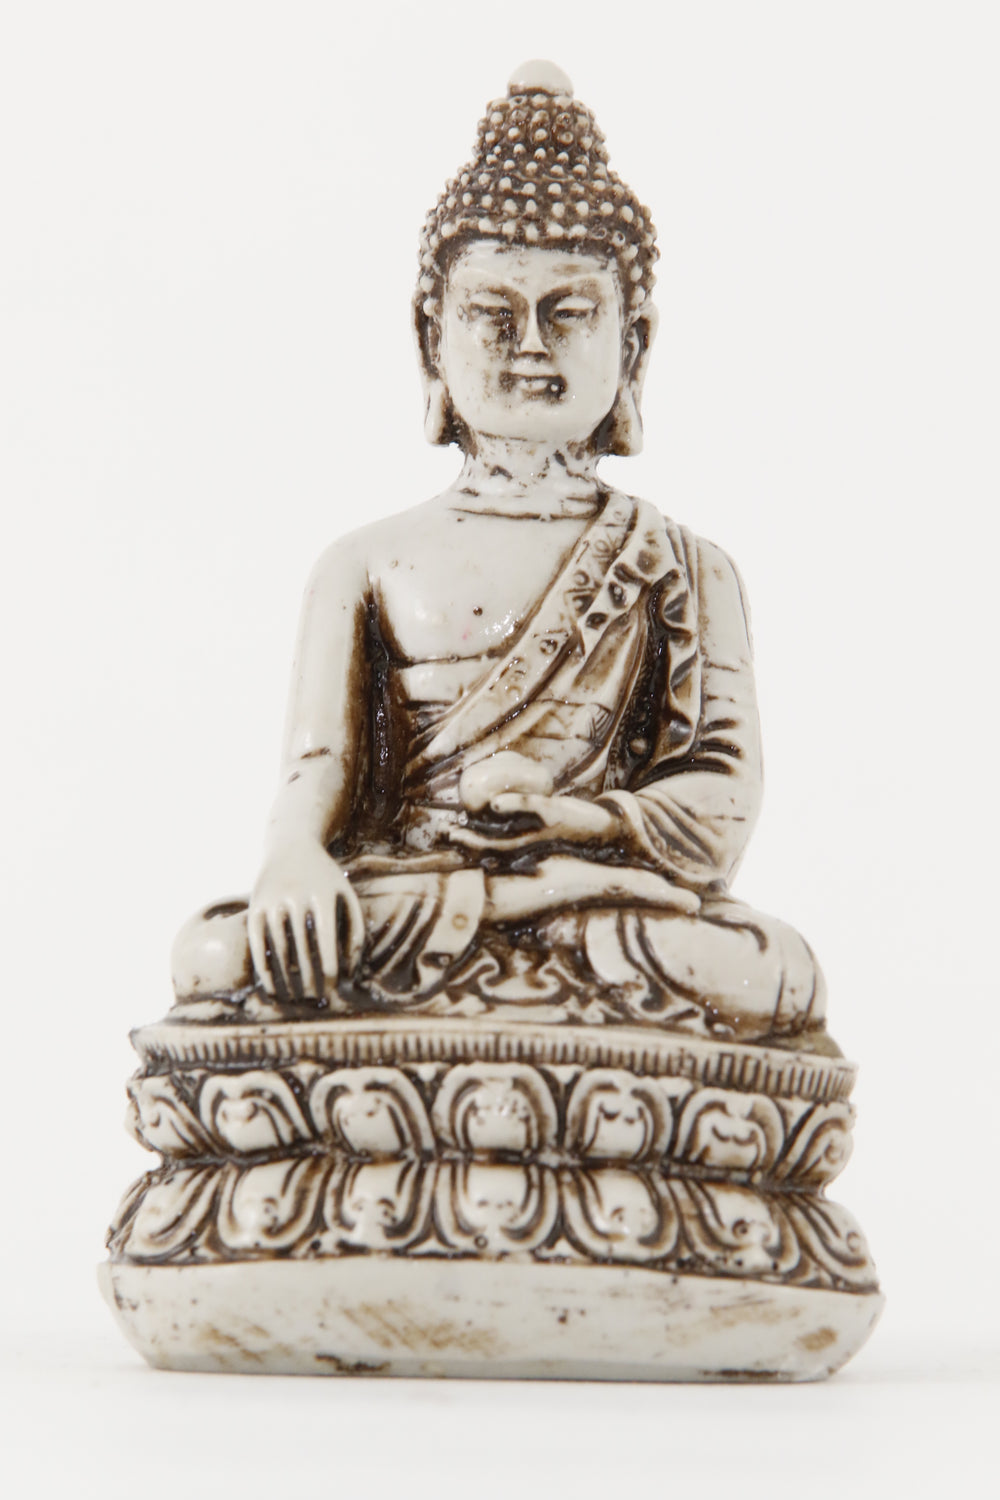 EARTH TOUCHING BUDDHA STATUE OFF-WHITE SMALL FRONT VIEW